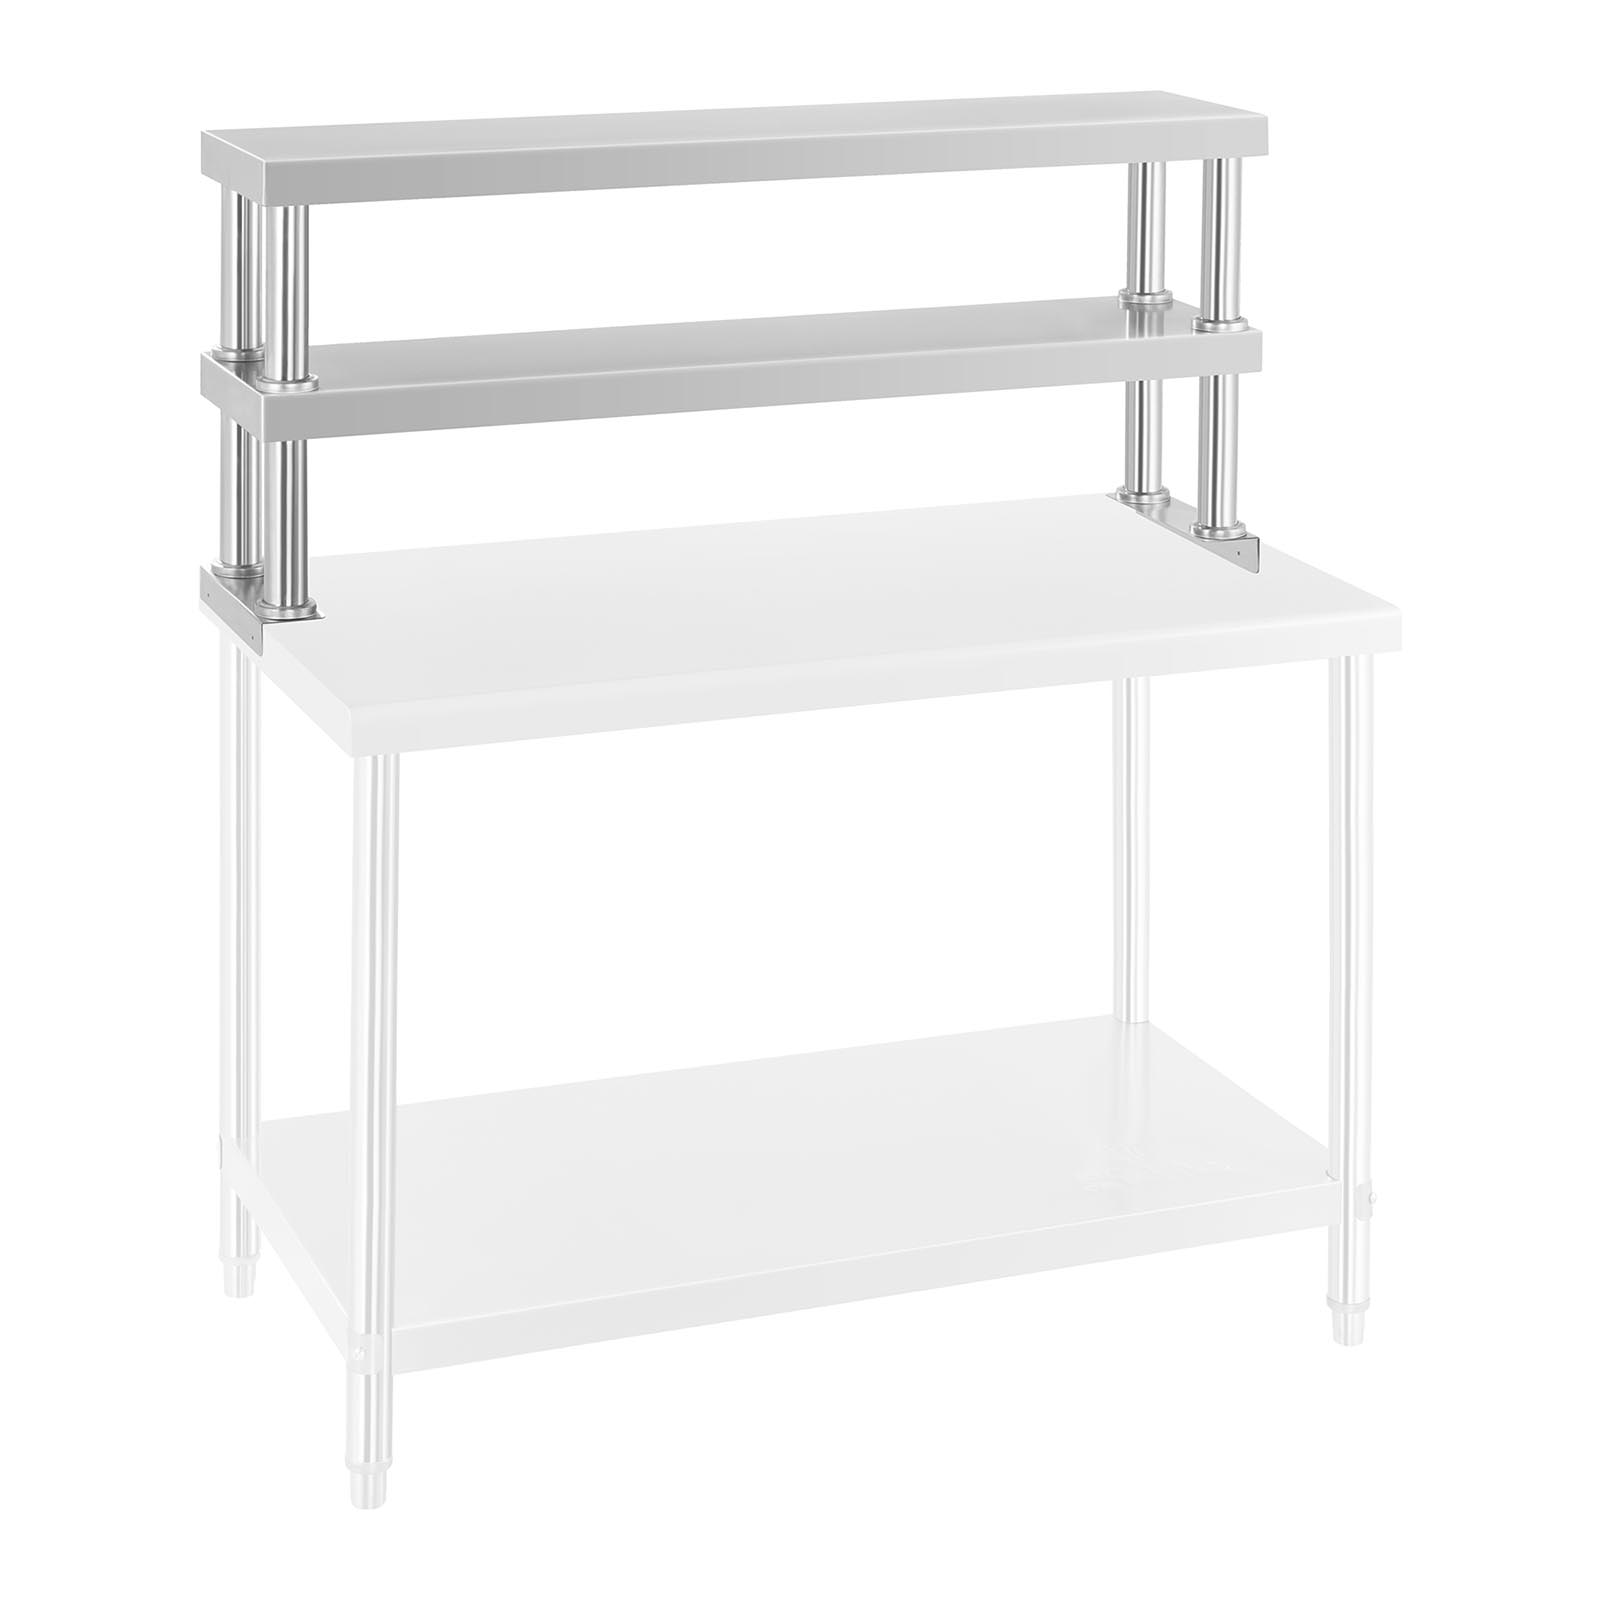 etagere d 39 appoint inox pour table de travail support pizza acier 120 cm 30 kg ebay. Black Bedroom Furniture Sets. Home Design Ideas